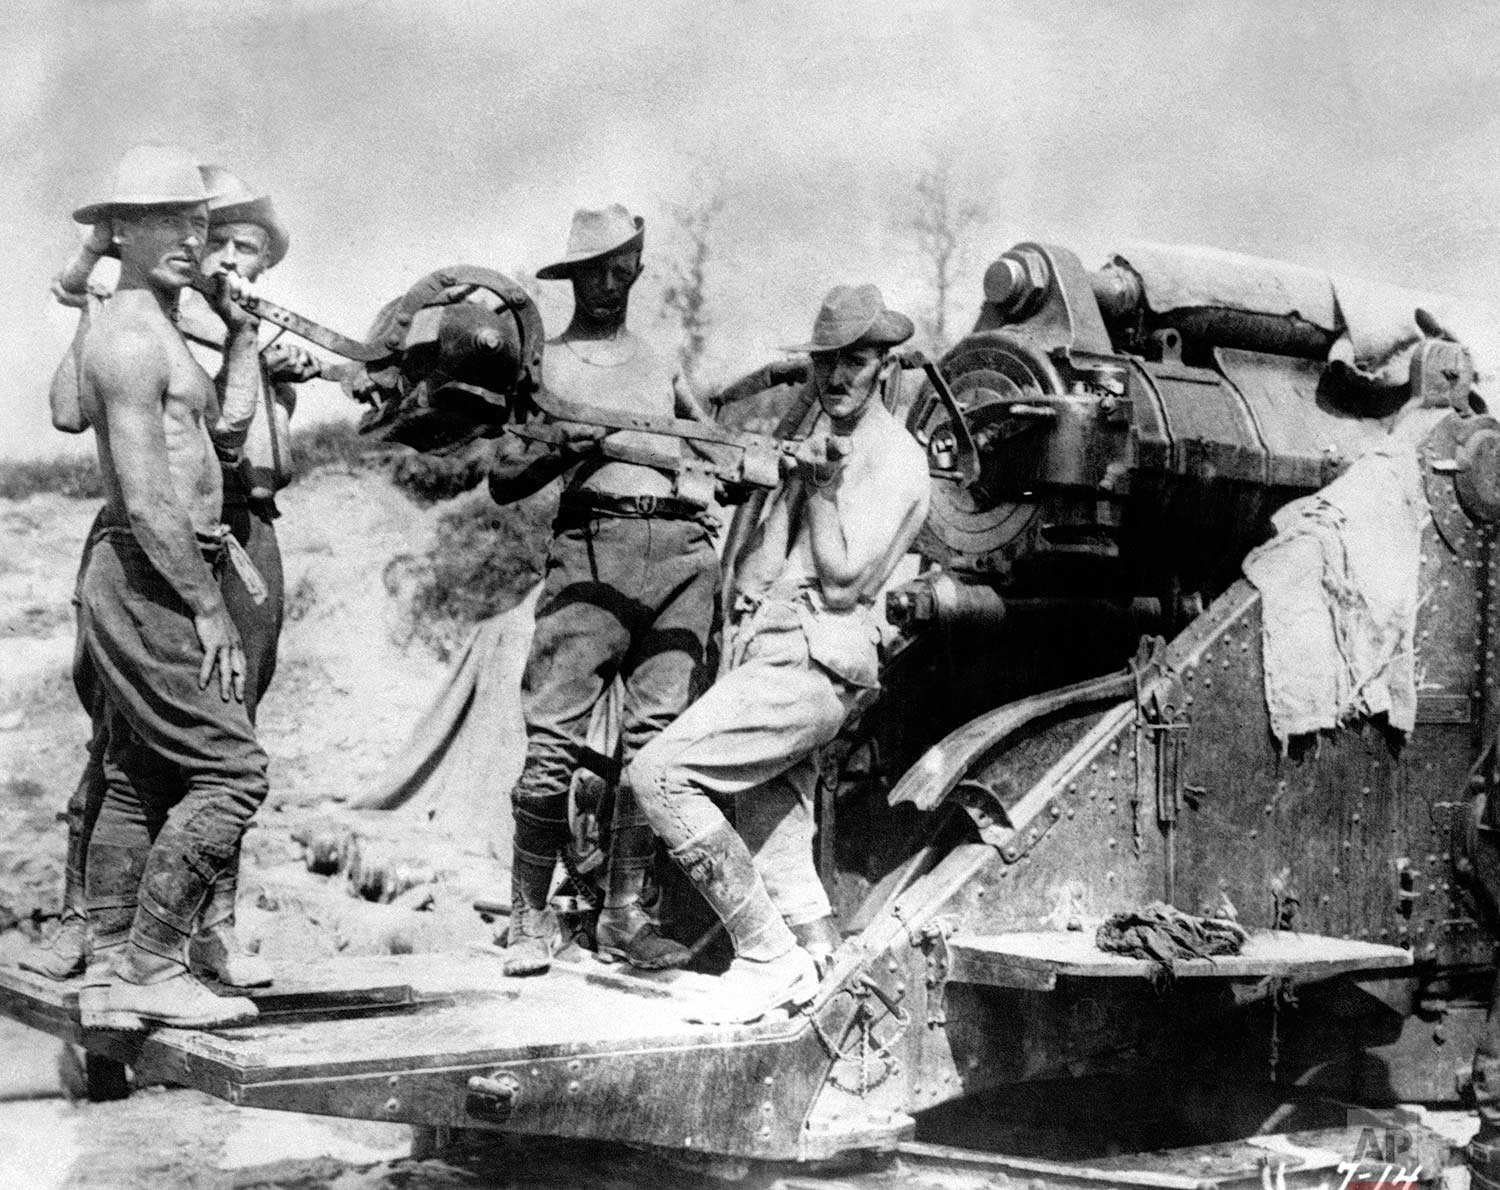 In this 1916 photo, Australian artillery soldiers operate a large caliber gun at the Somme front, in France during World War One. (AP Photo)